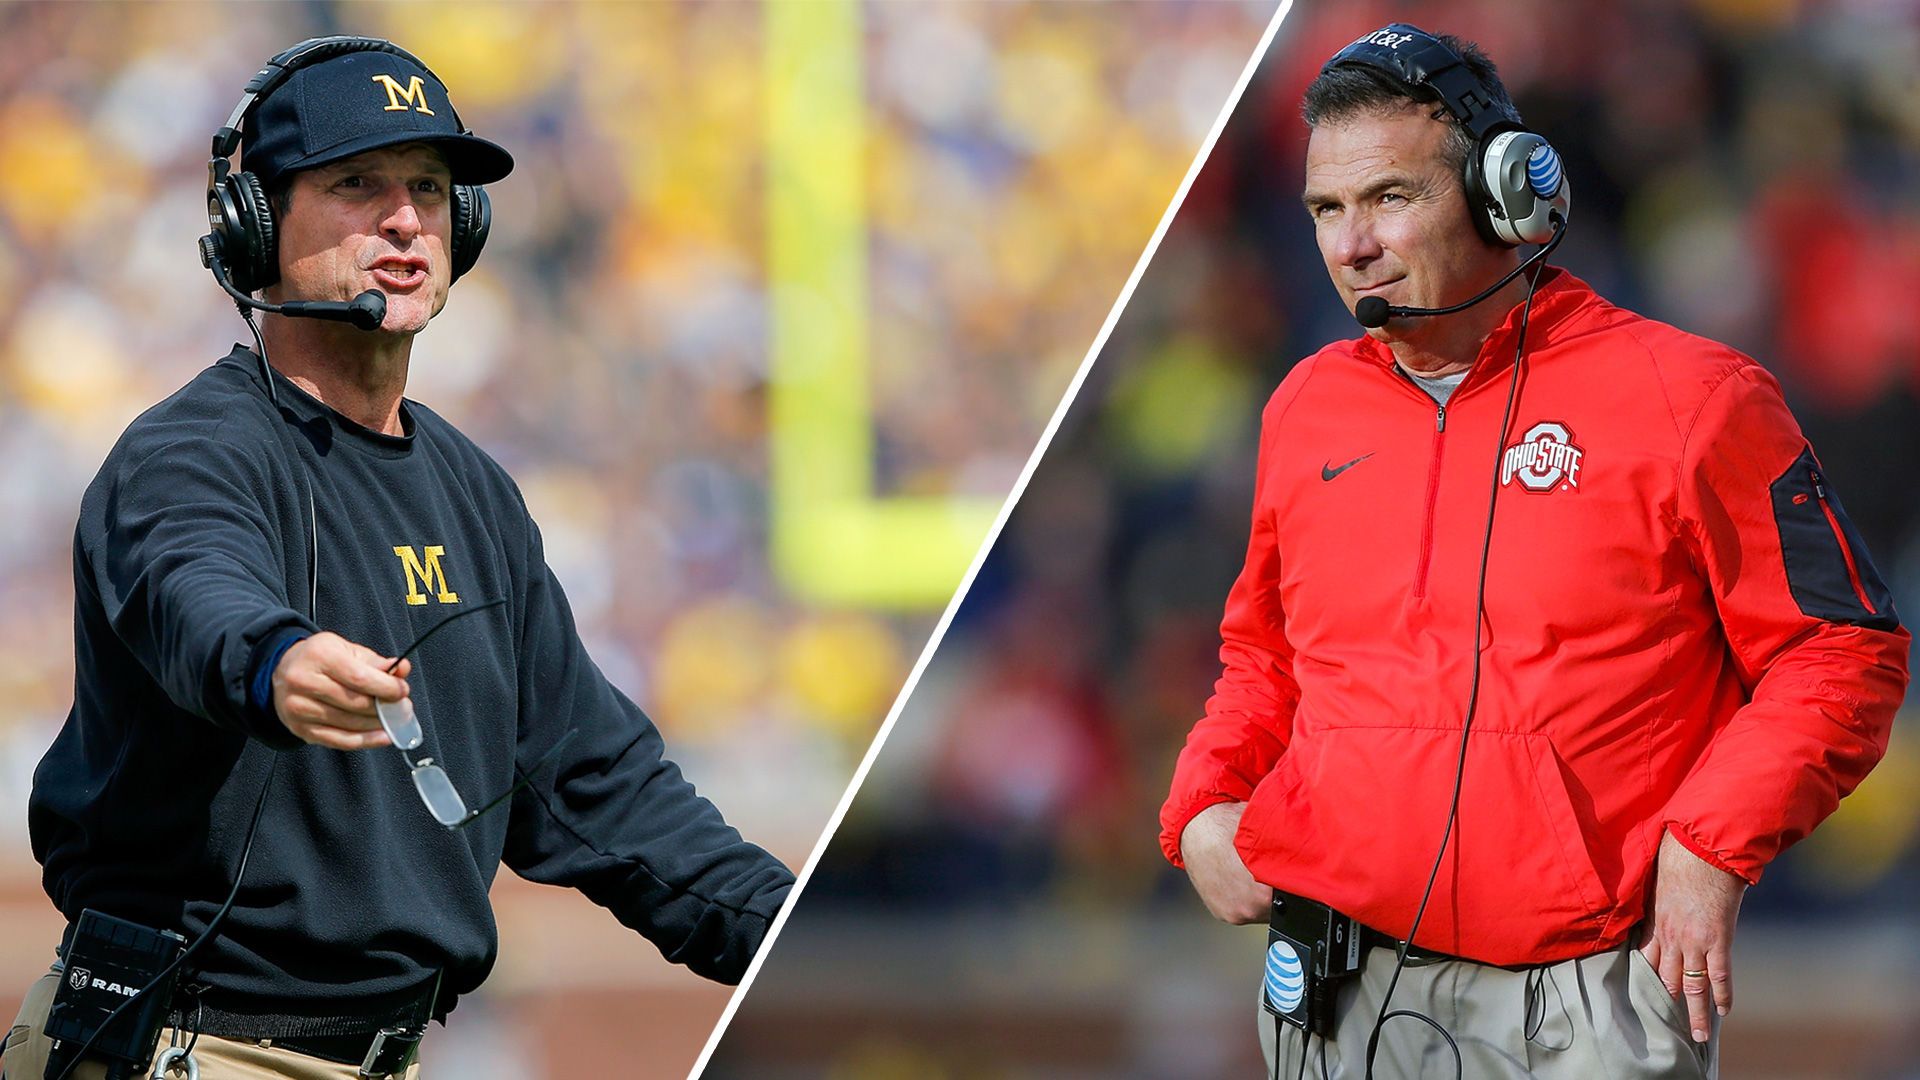 Michigan's best bet vs. Ohio State? Make it really ugly